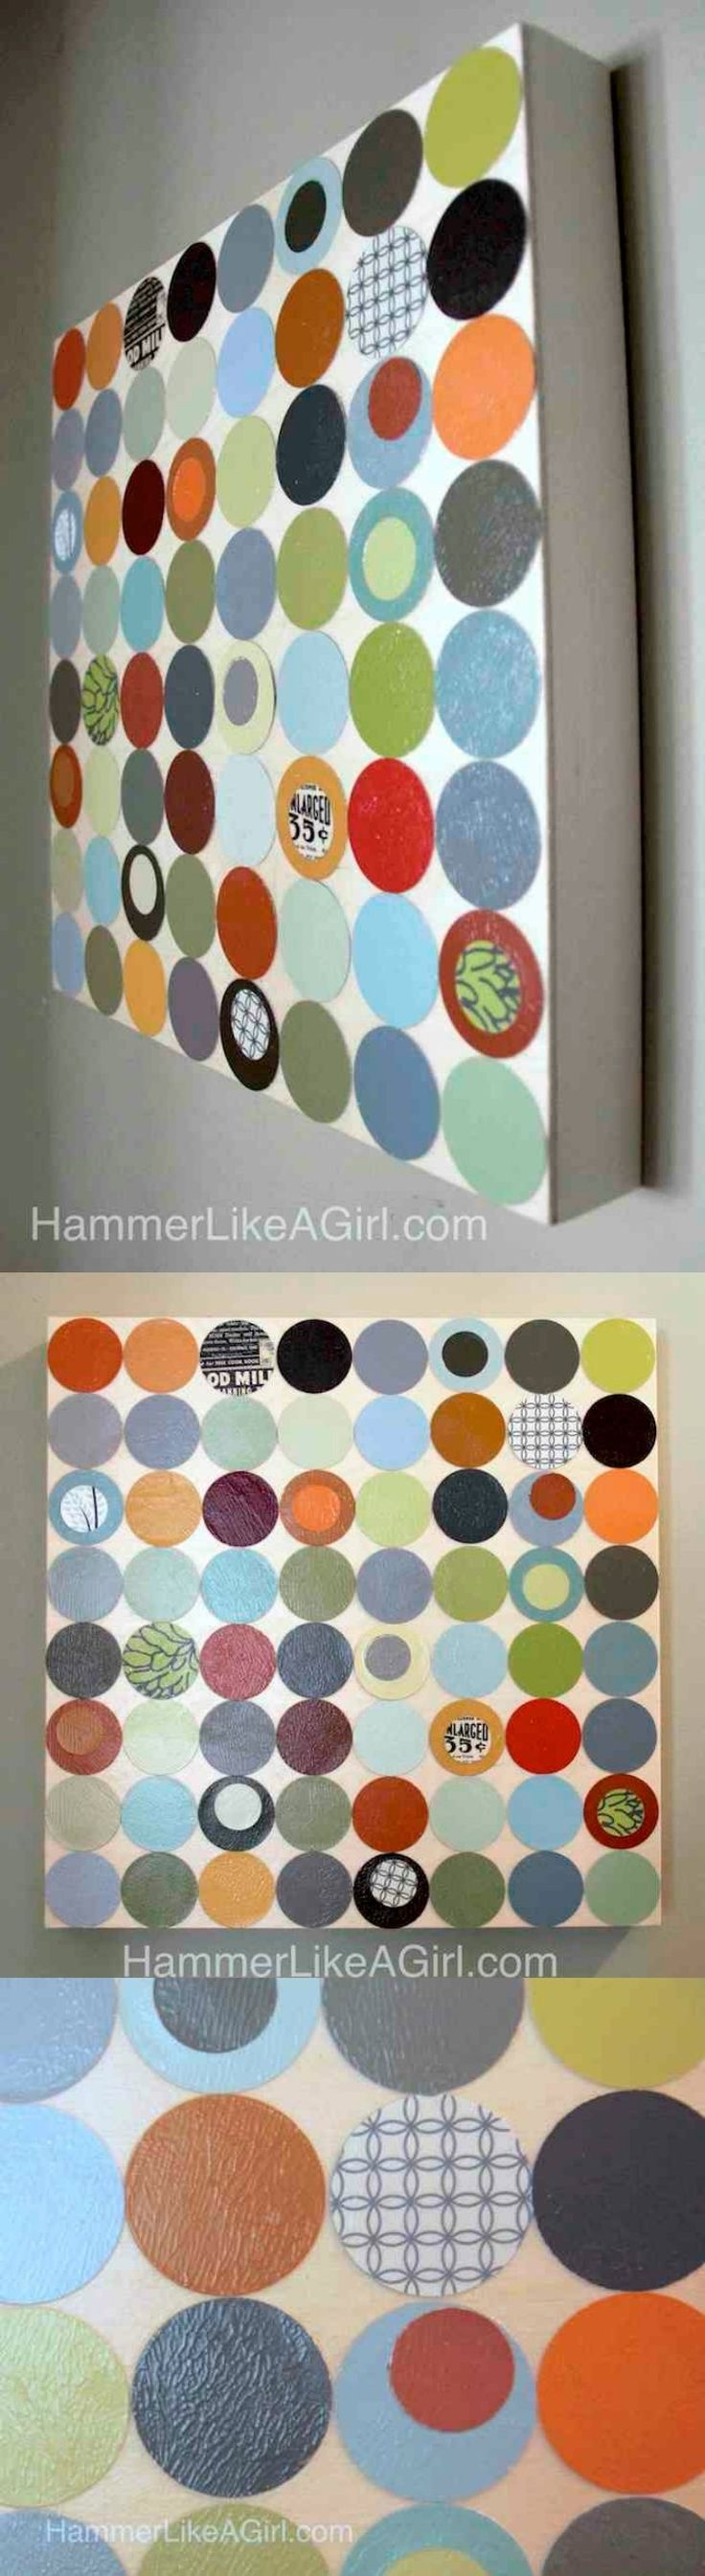 203 Best Wall Art & Ideas Images On Pinterest | Projects, Crafts For Most Recent Fabric Swatch Wall Art (View 11 of 15)